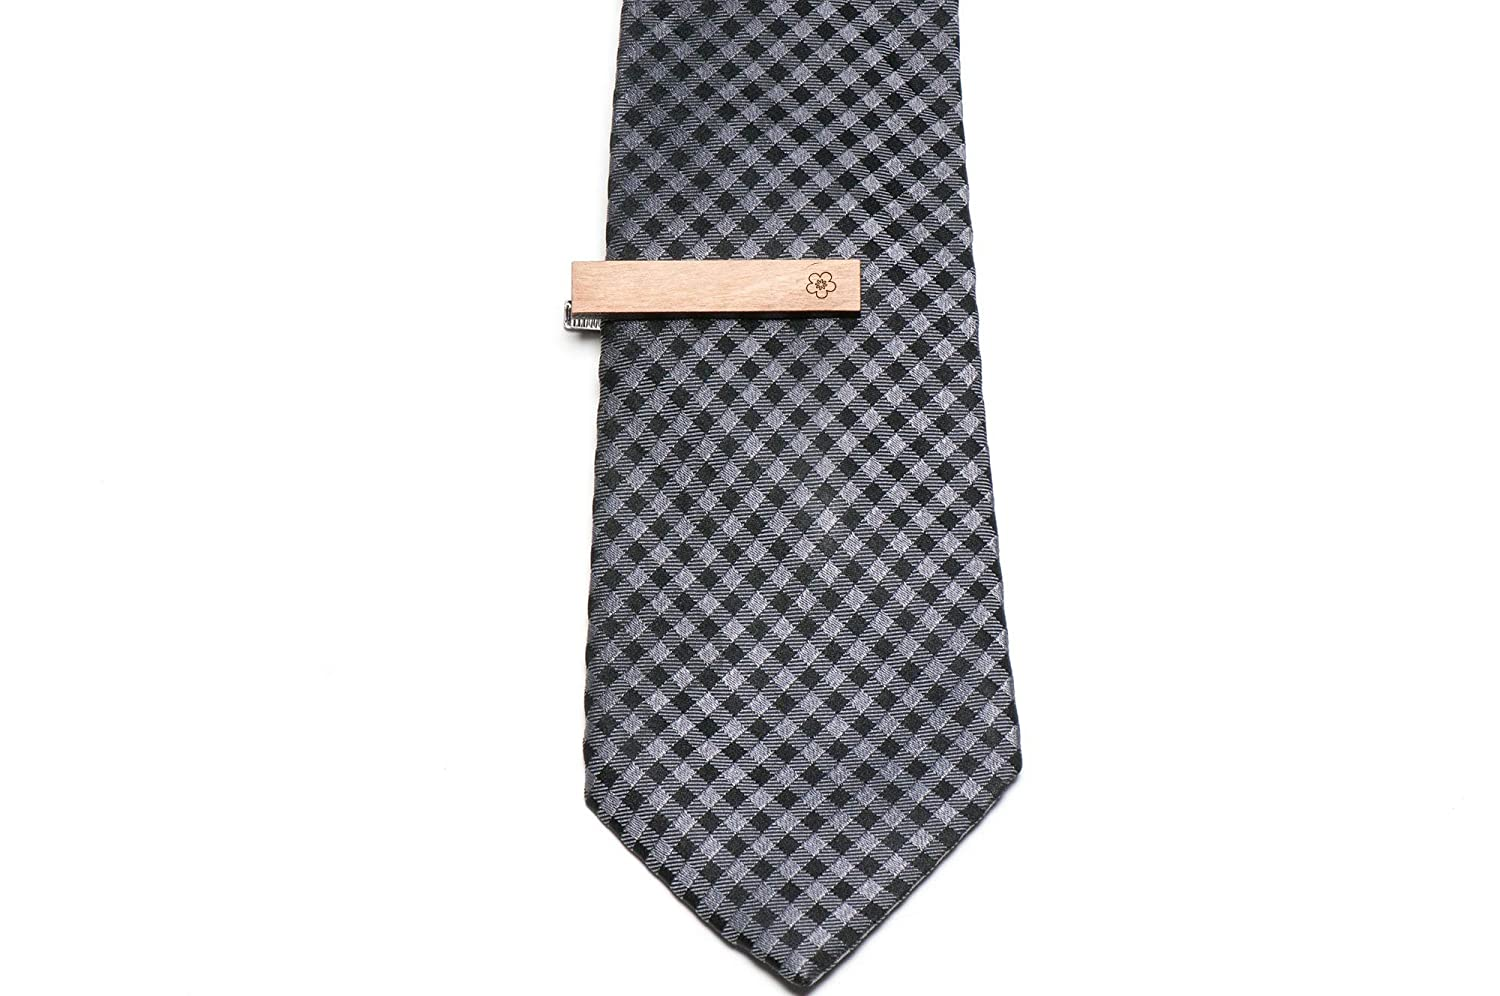 Wooden Accessories Company Wooden Tie Clips with Laser Engraved Ochna Design Cherry Wood Tie Bar Engraved in The USA